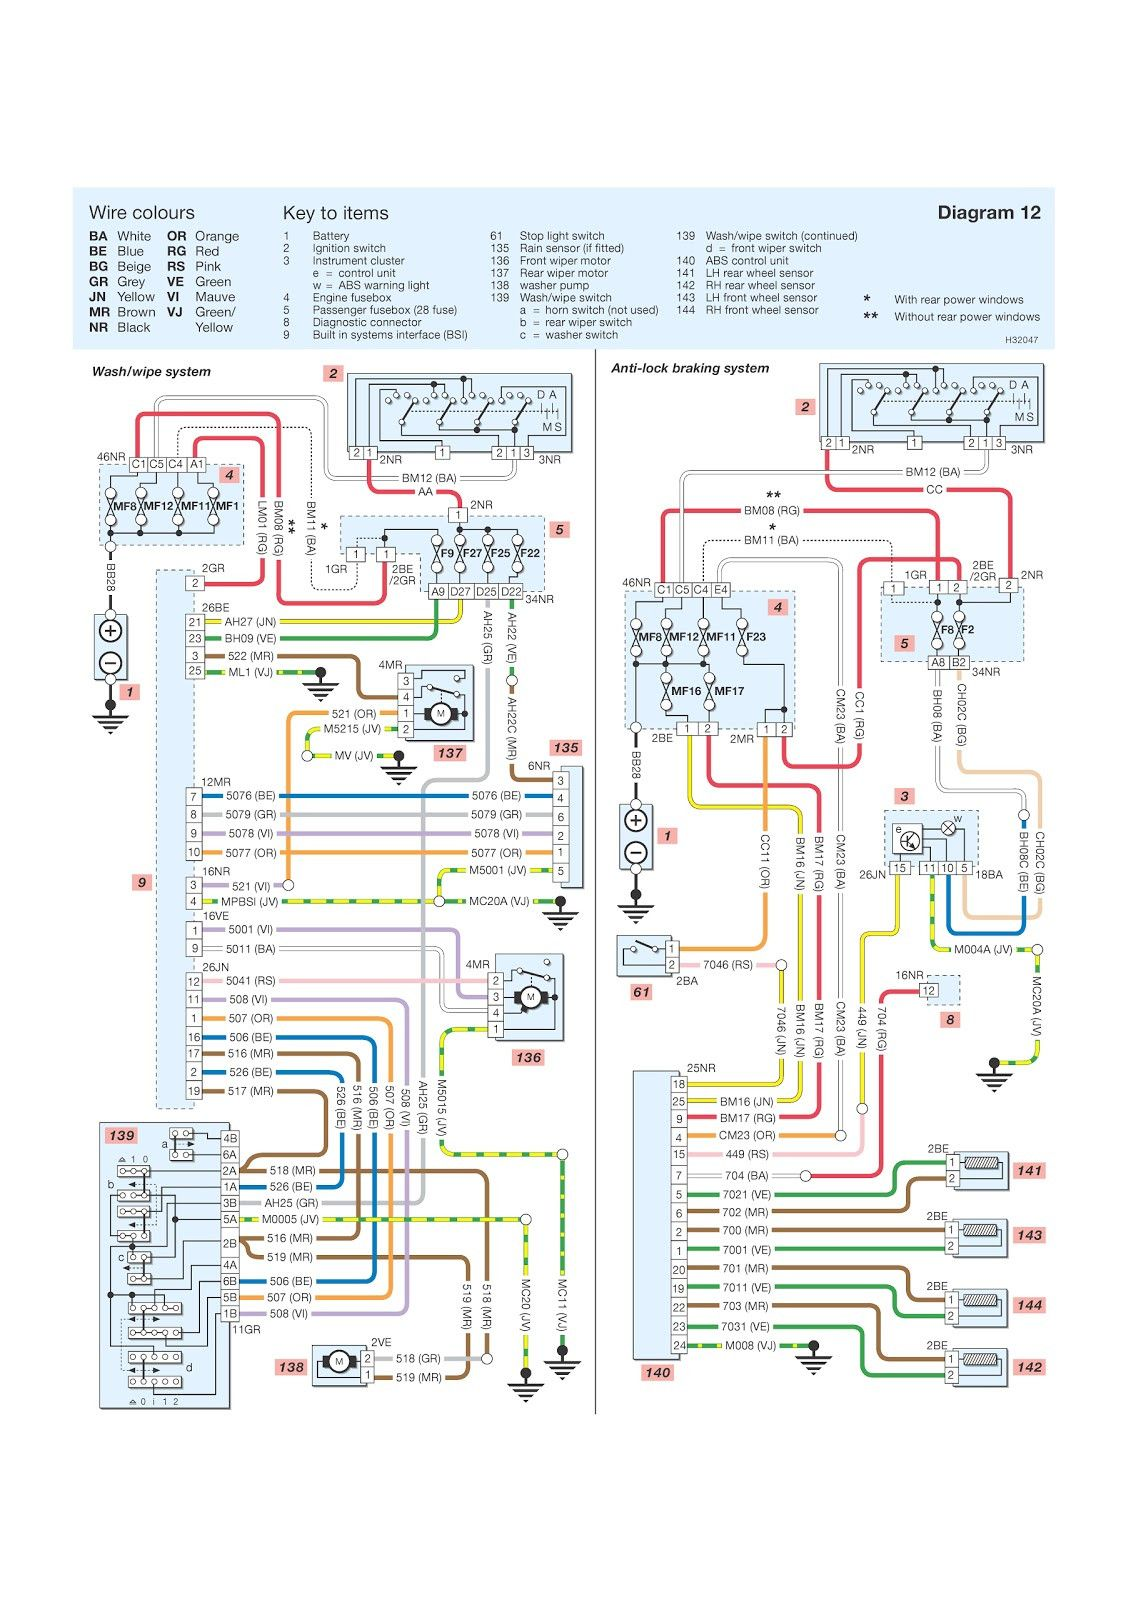 Enjoyable Peugeot Transmission Diagrams Wiring Diagram Wiring Digital Resources Funapmognl